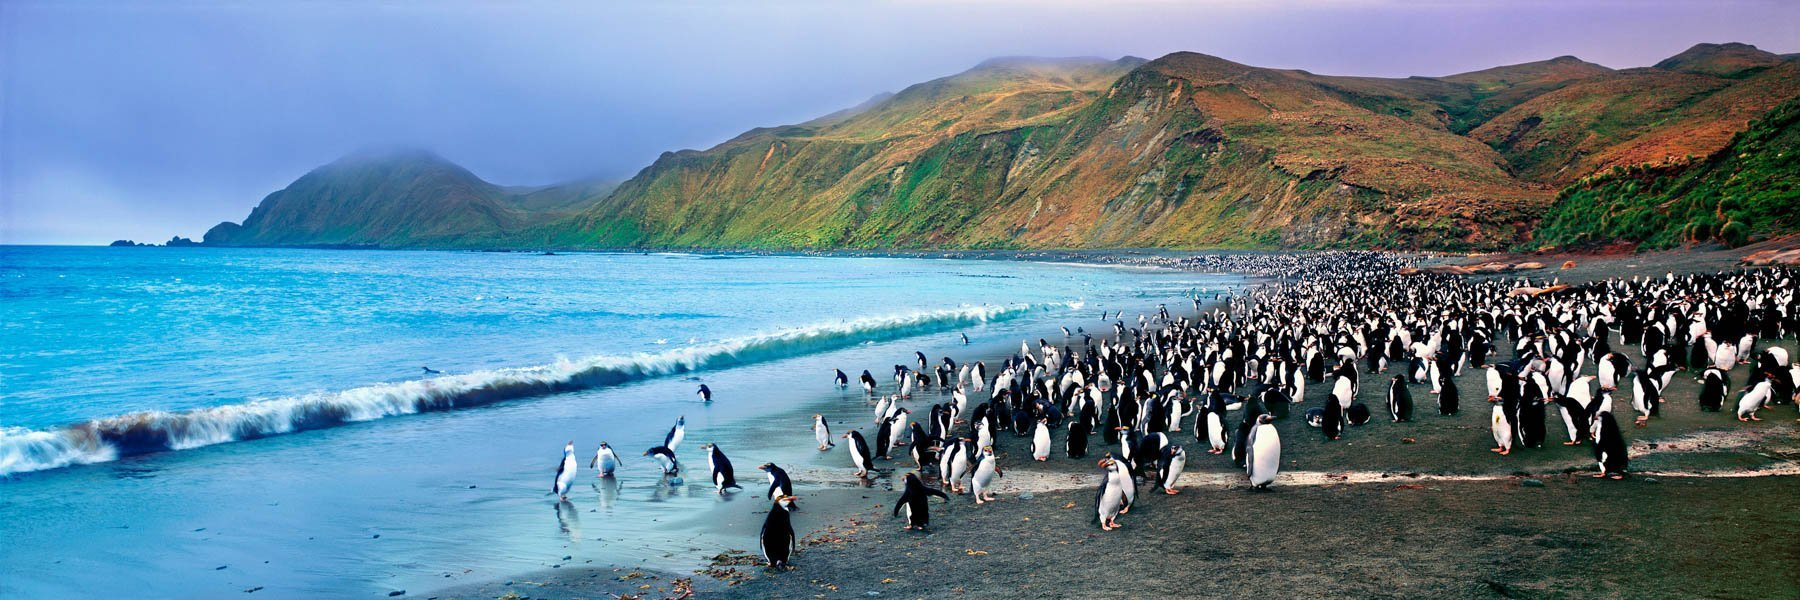 A large group of royal penguins on the shores of Macquarie Island, Australia.